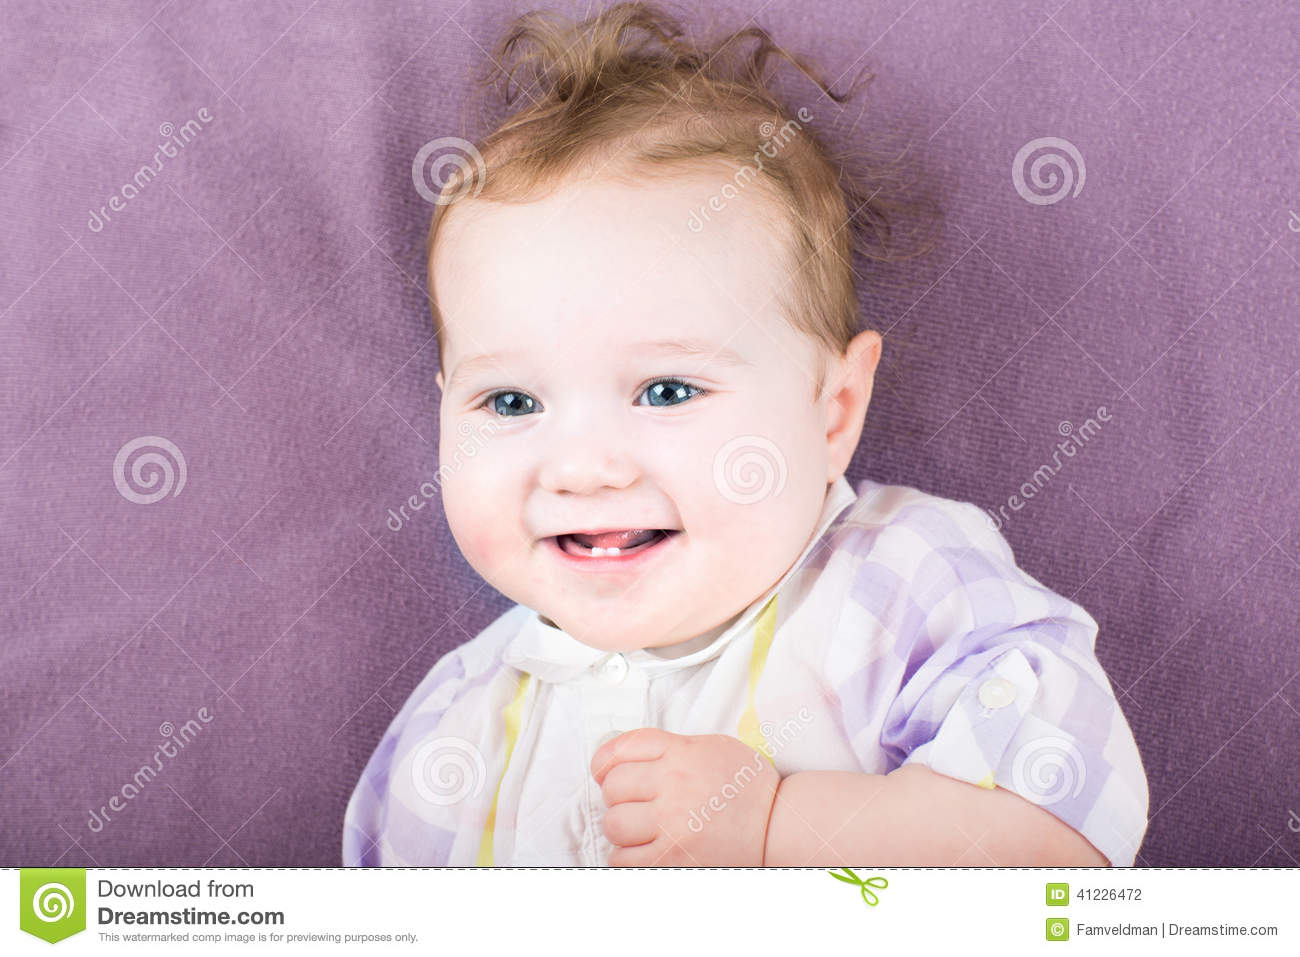 sweet baby girl in a purple dress on purple background